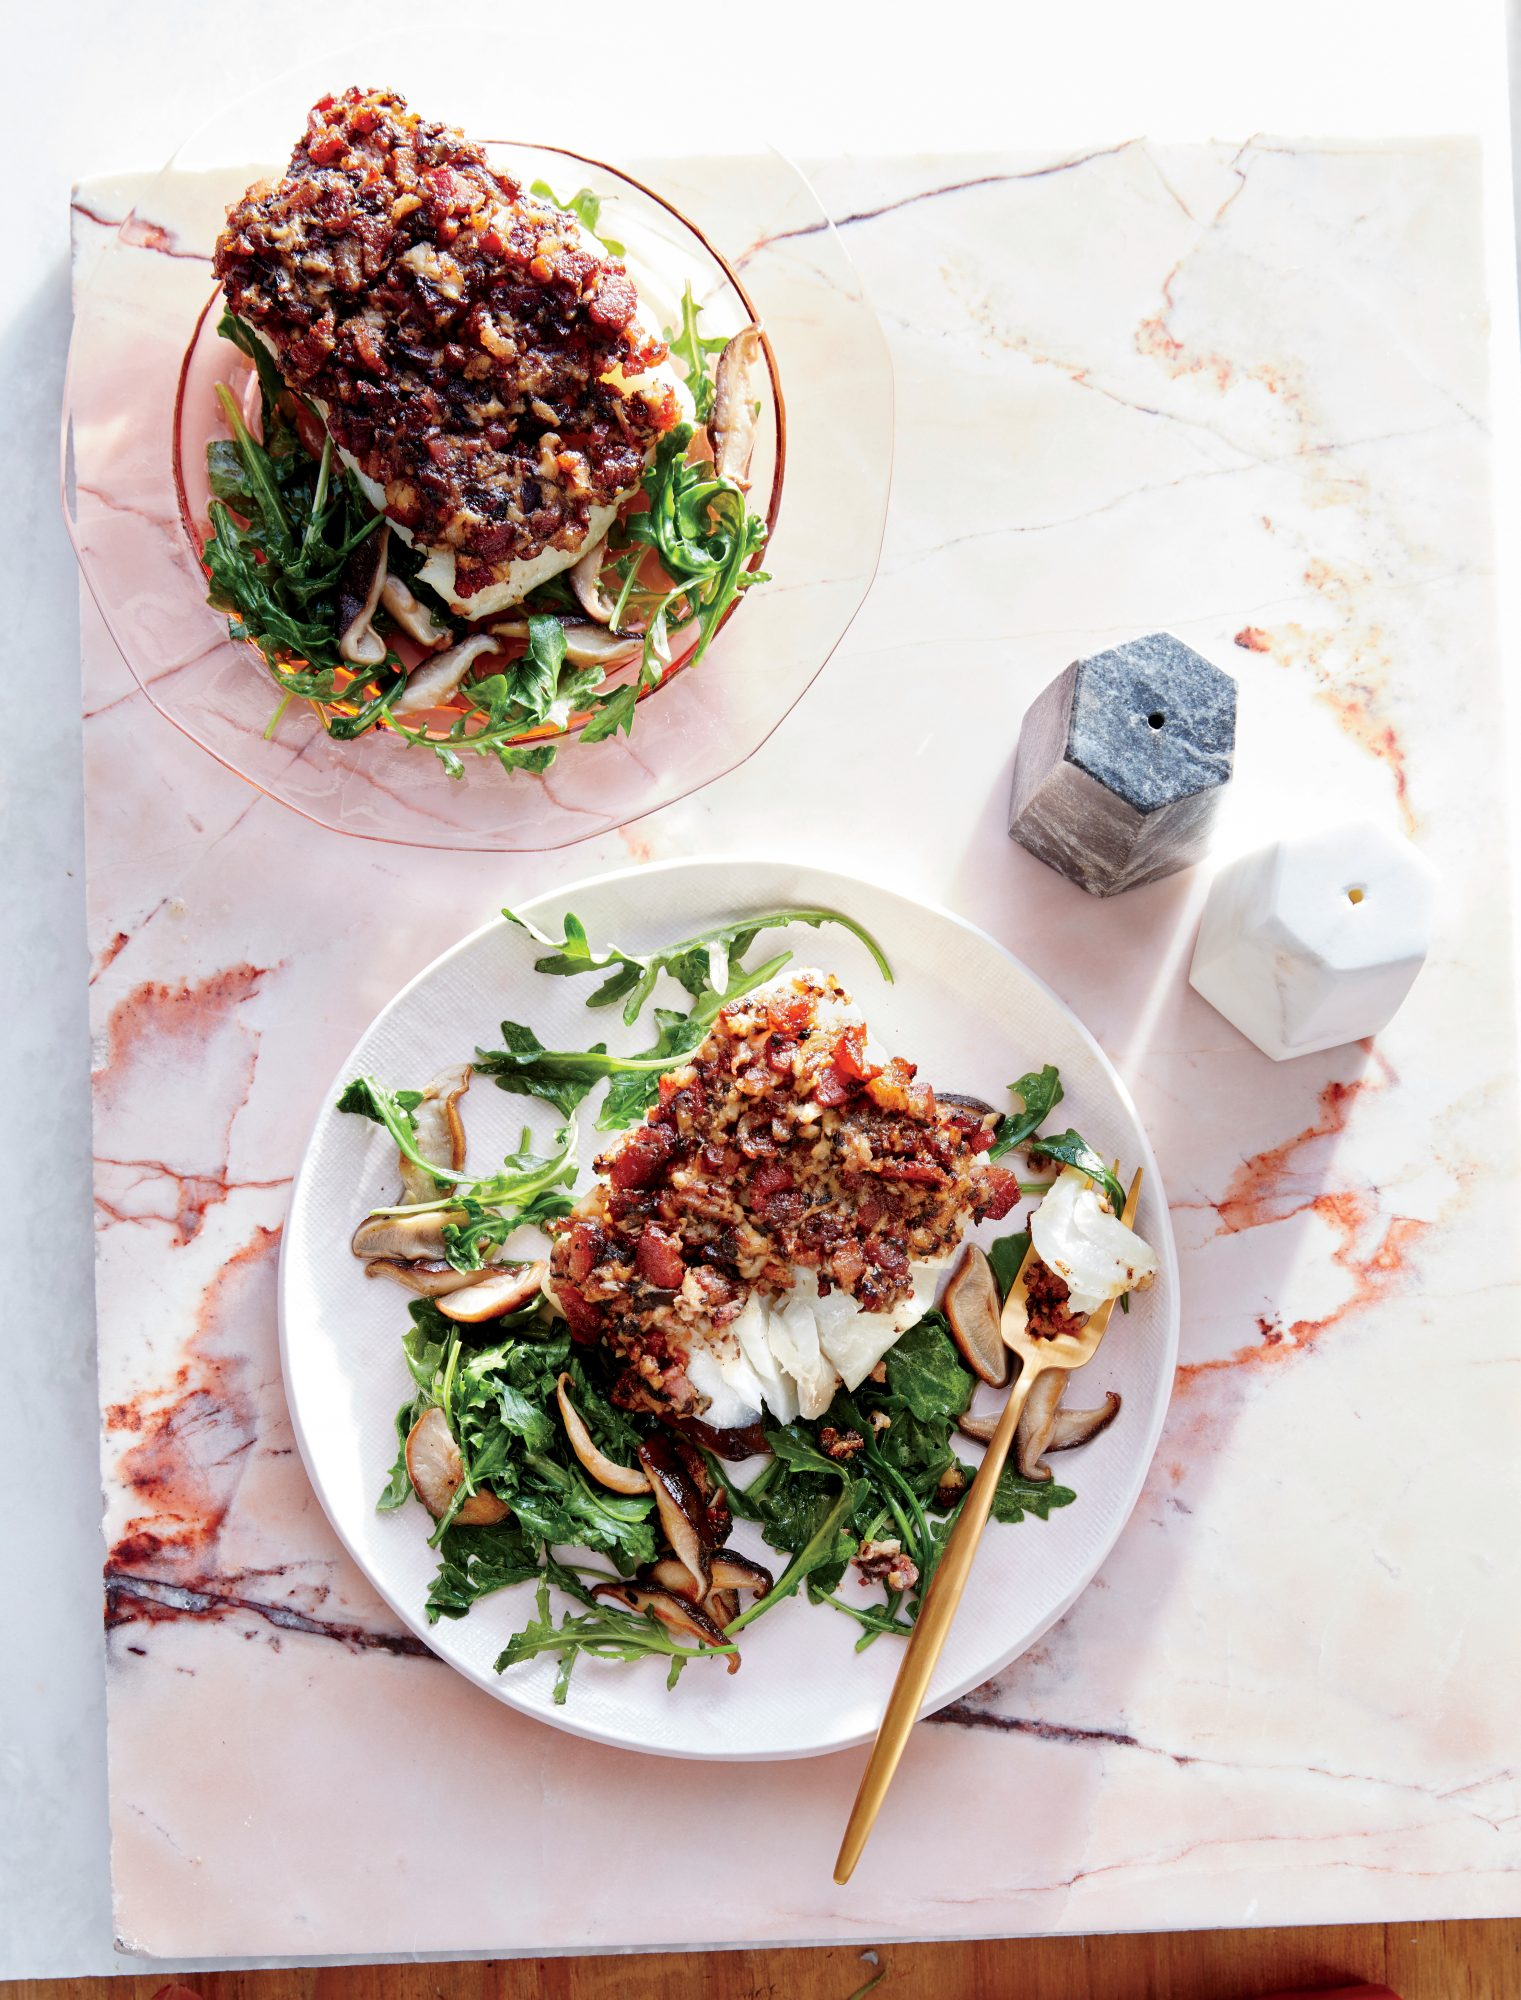 Cod with Shiitake-Bacon Crust and Arugula Salad